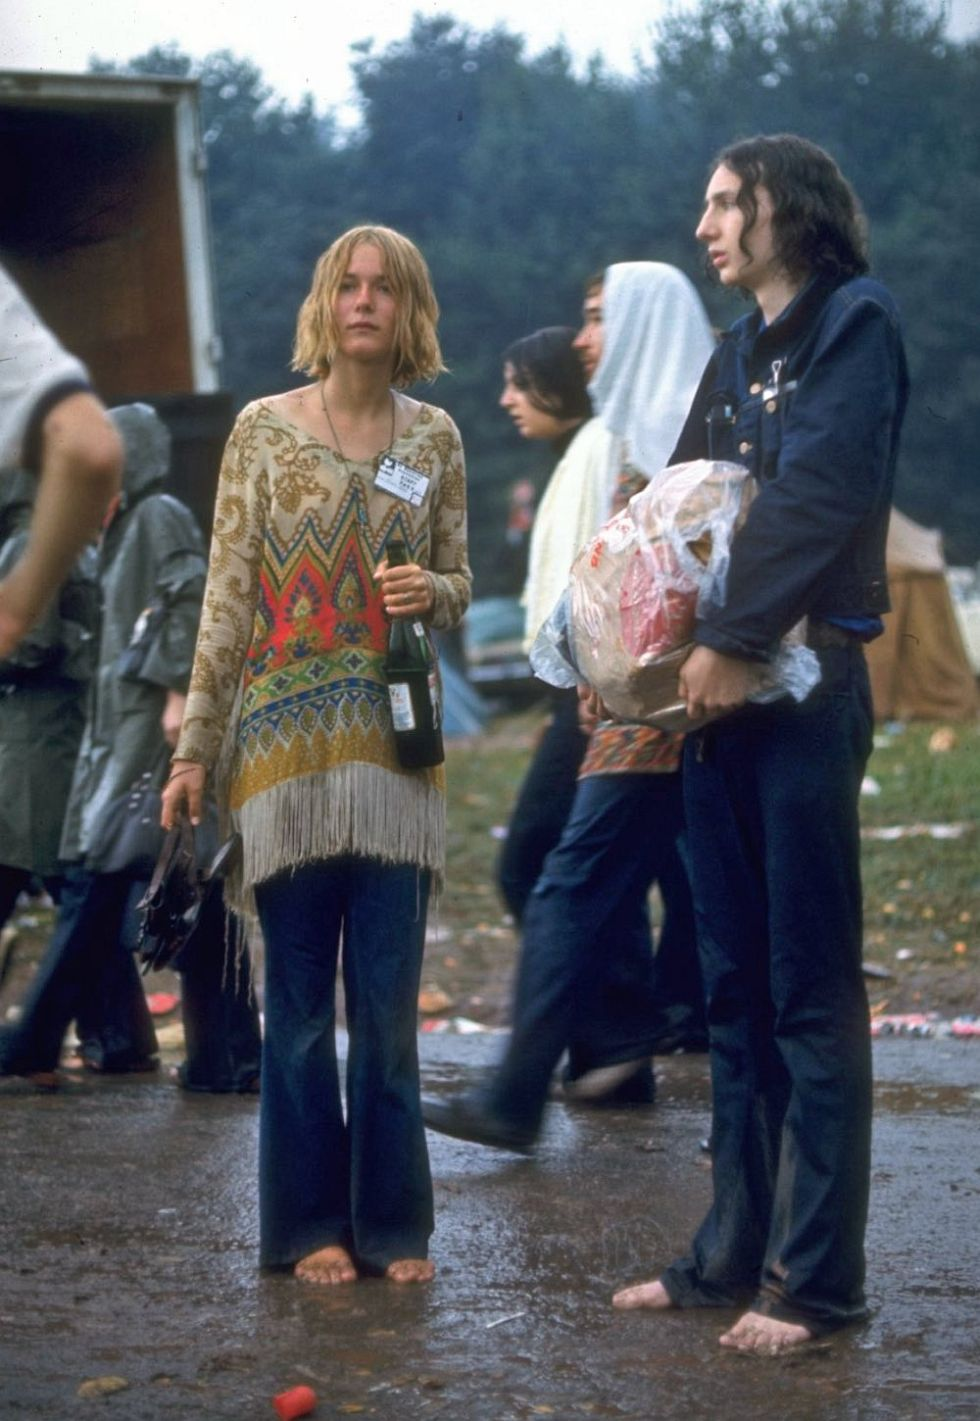 Hippie couple standing barefoot on a road holding a bundle & wine bottle